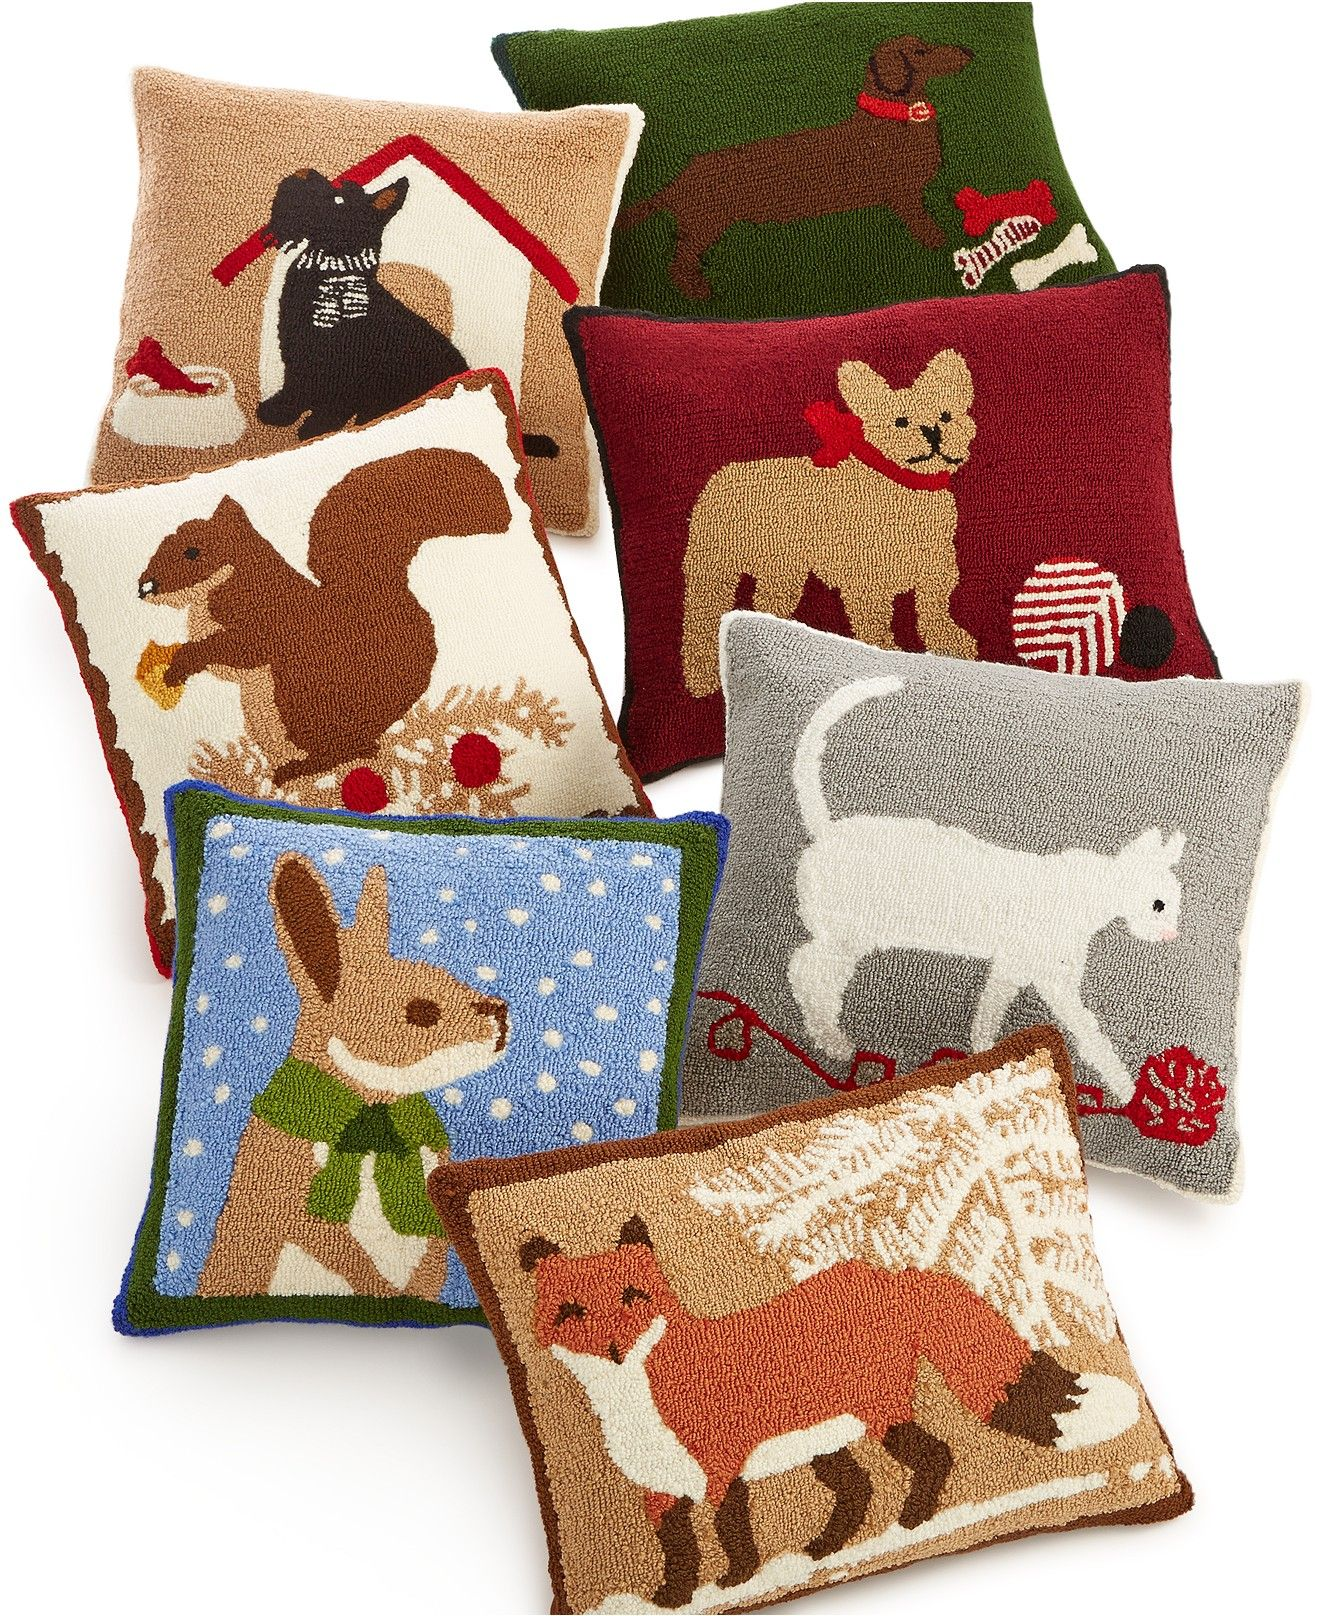 Macy's Decorative Pillows Gorgeous Martha Stewart Collection Bunny Decorative Pillow Only At Macy's Inspiration Design